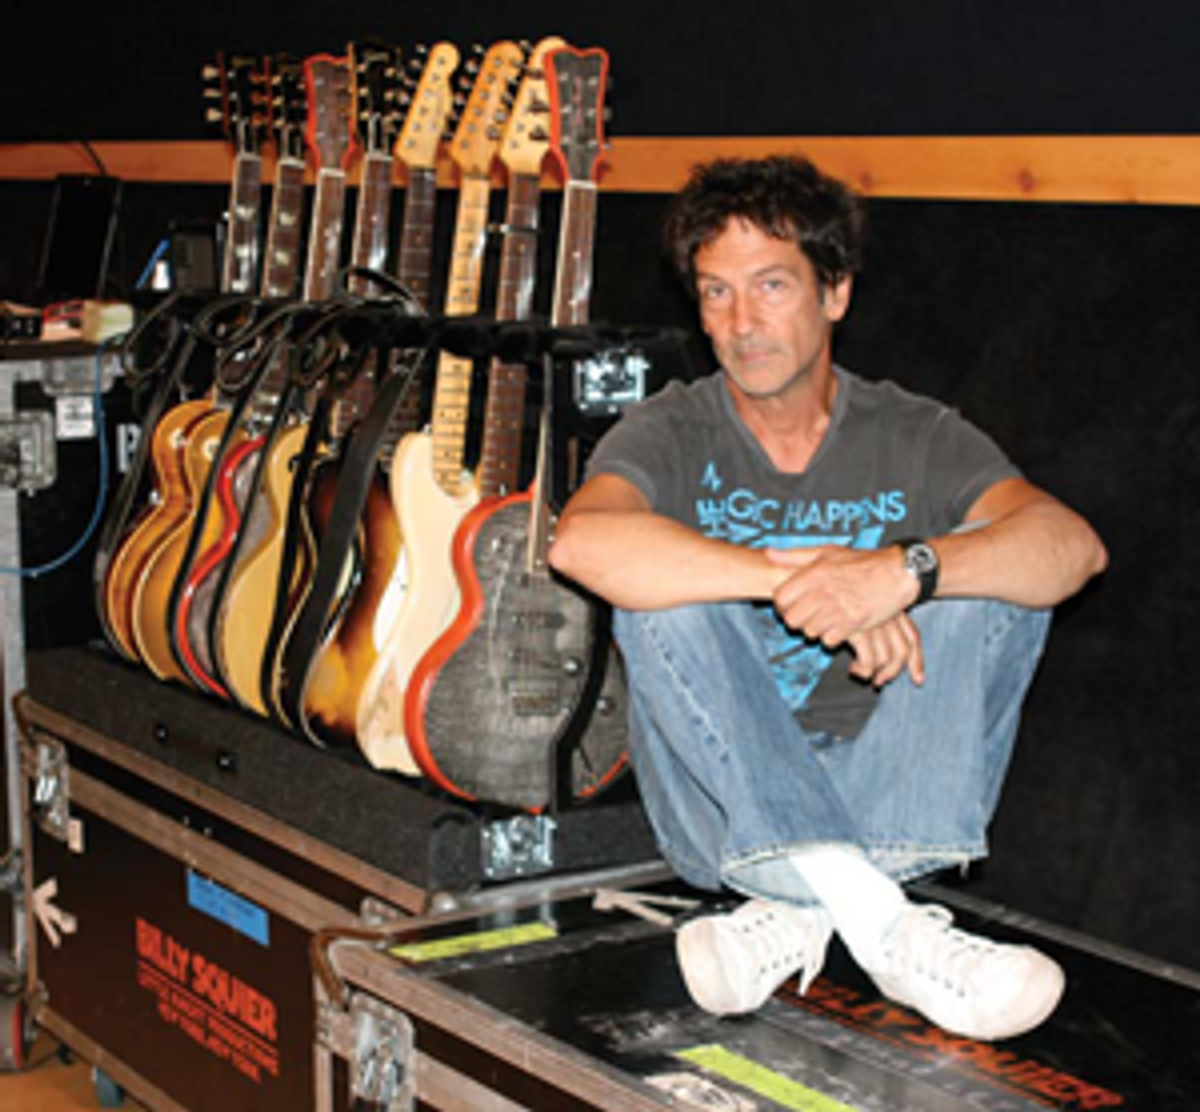 Gearing up with Billy Squier